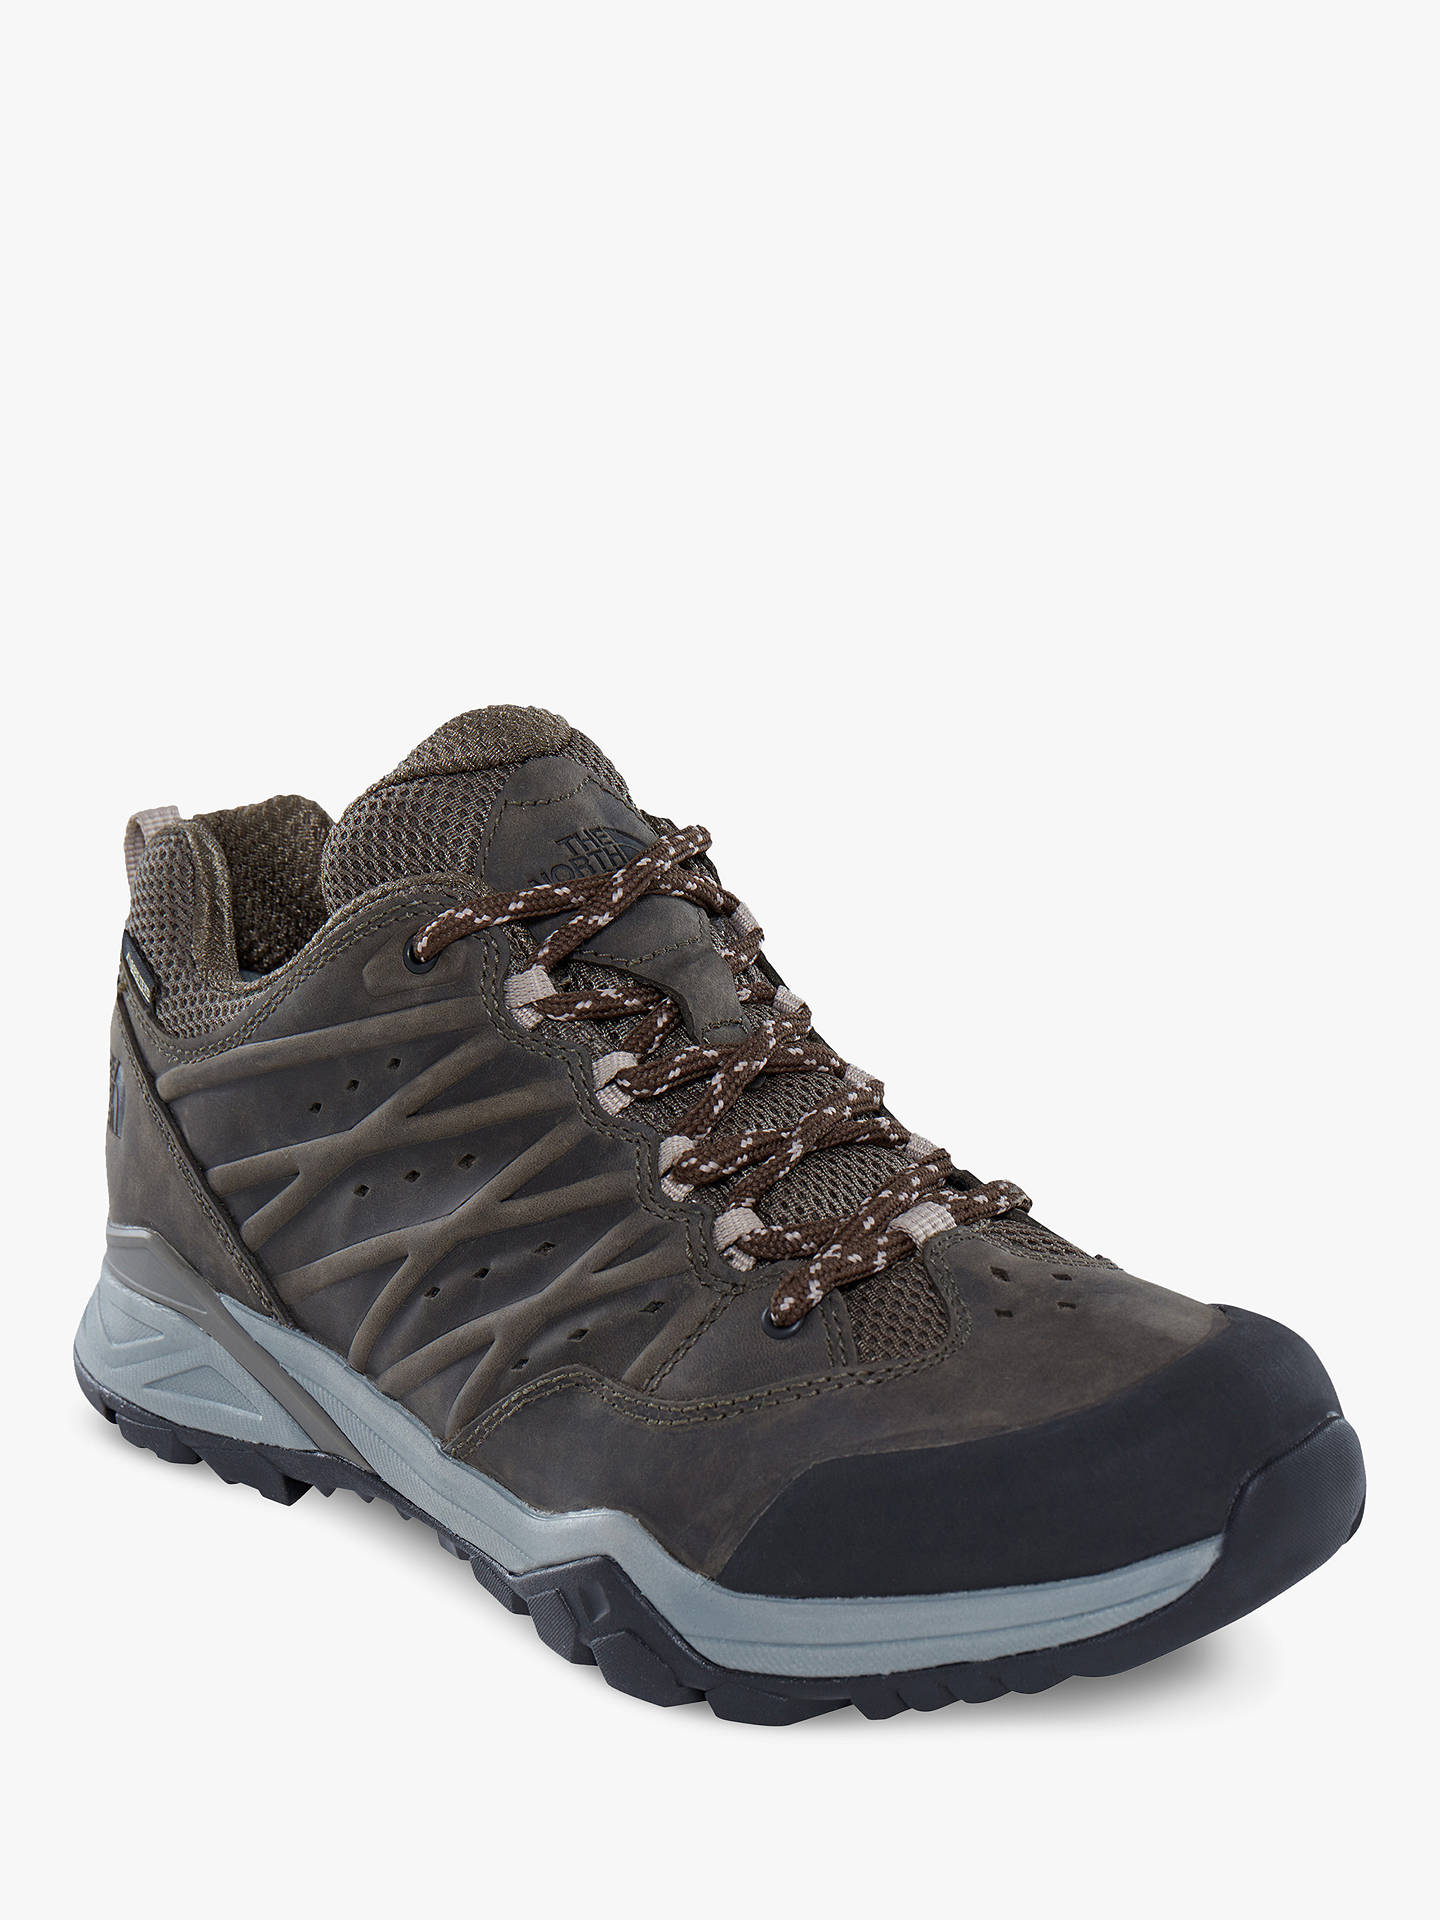 bf3c472ee The North Face Hedgehog Hike 2 GORE-TEX Men's Hiking Boots, Tarmac  Green/Burnt Olive Green